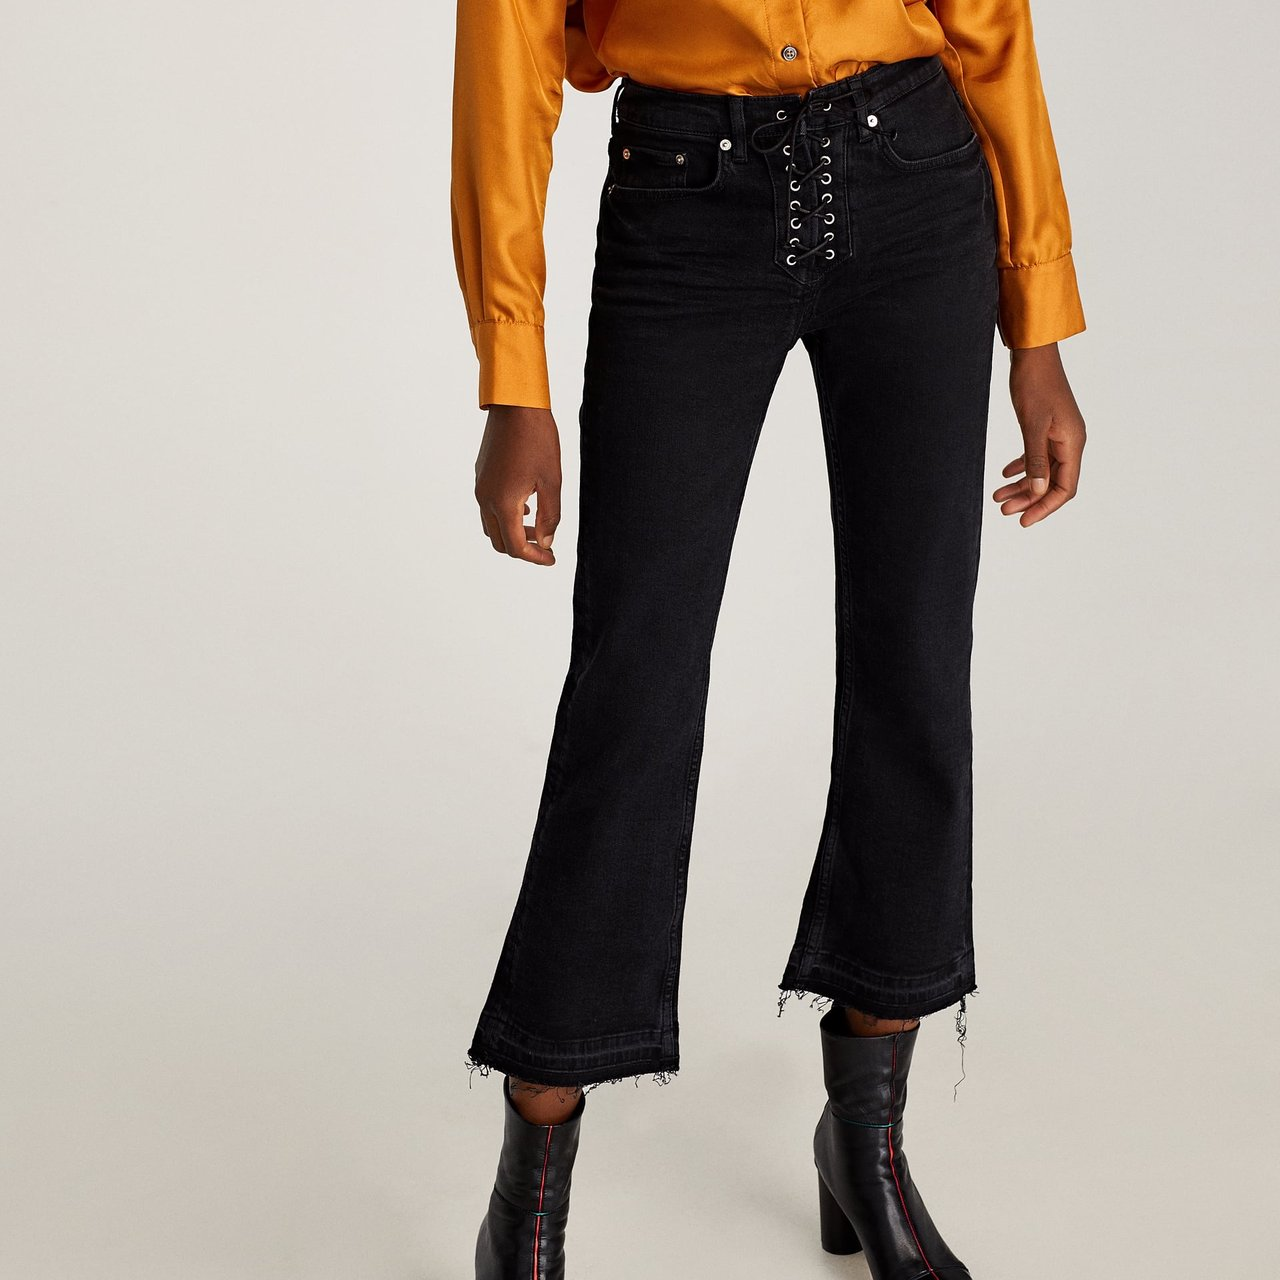 d846393f184822 Zara Lace Up Jeans High waisted